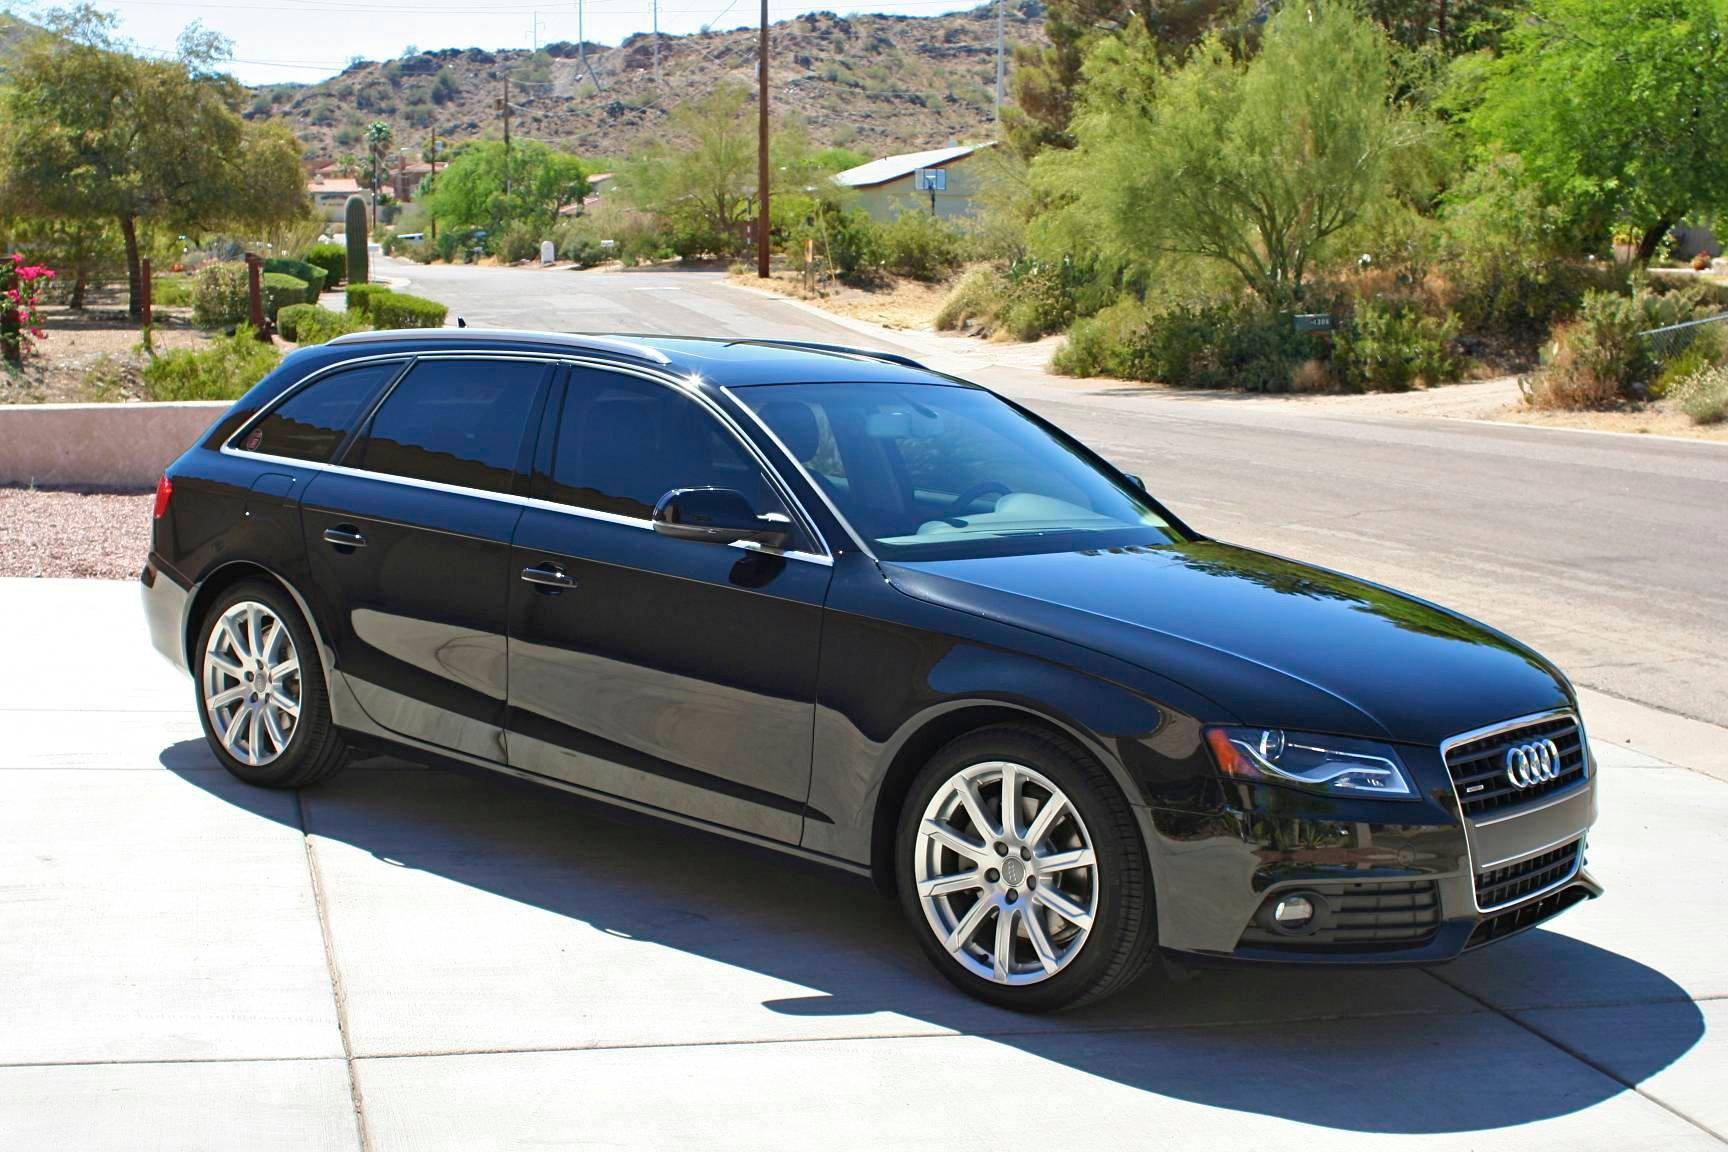 mrperfect's 2010 Audi A4